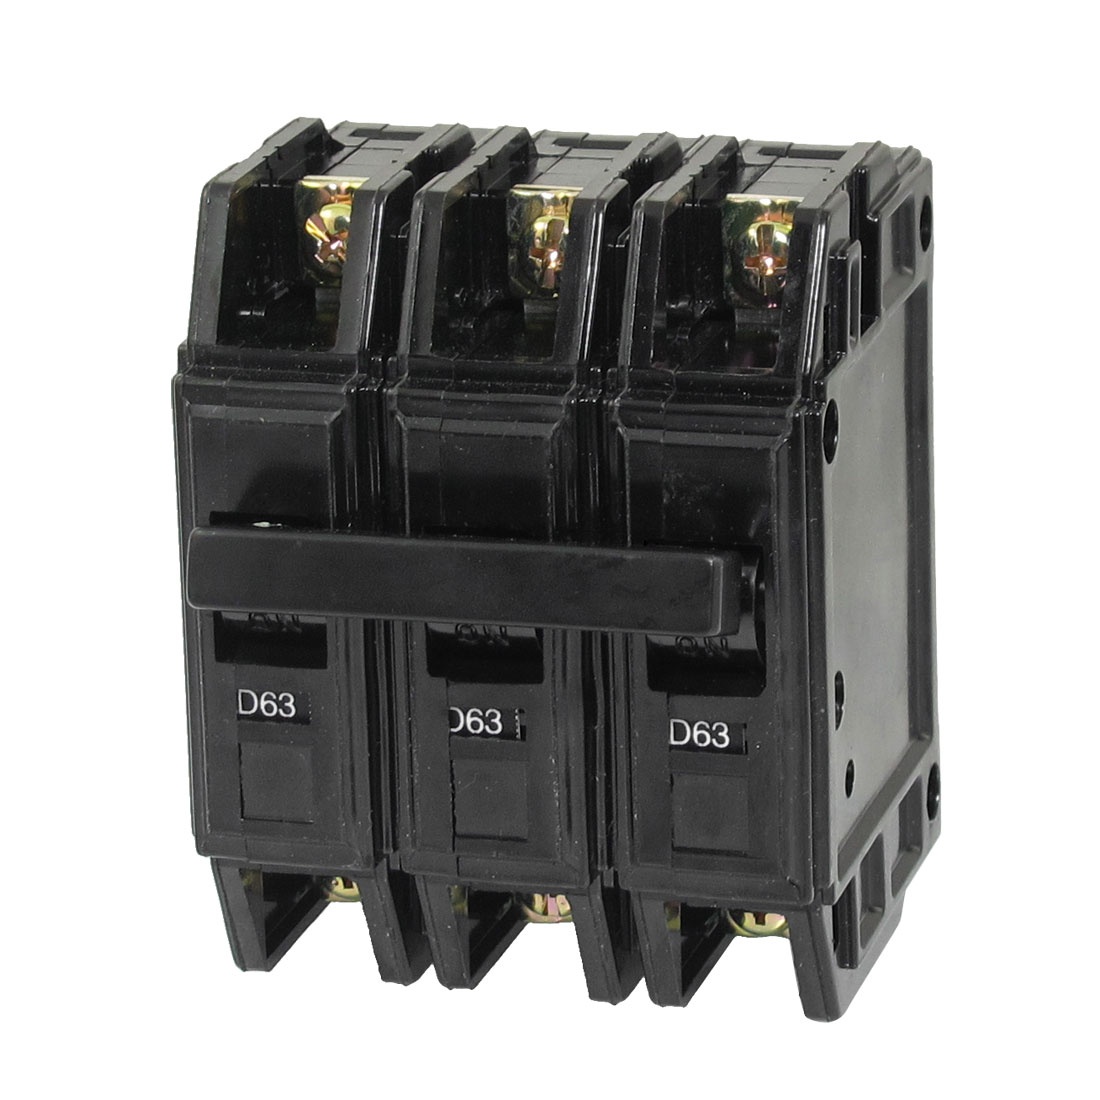 AC 220V/380V 63A 3P Plastic Housing Moulded Case Circuit Breaker DZ12-63 D63